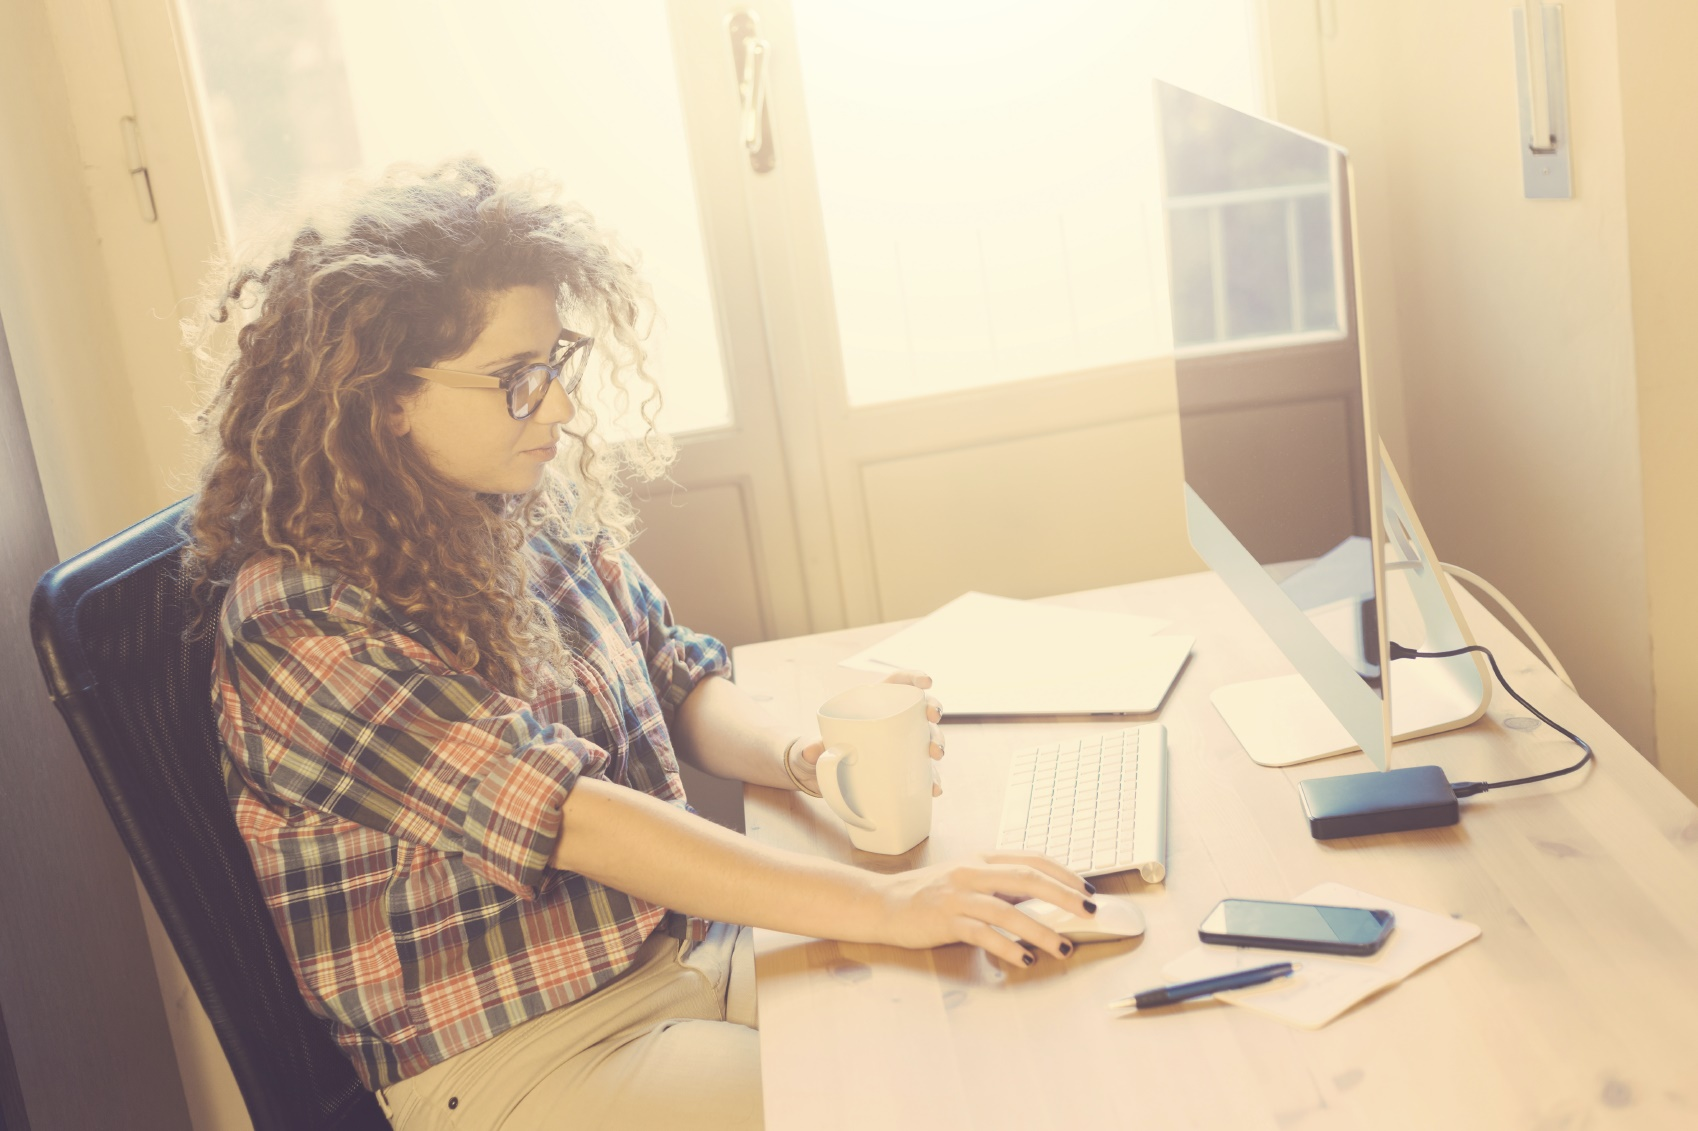 Young woman working at home or in a small office, vintage hipster clothing, curly hair. There is a cup of tea or coffee on the desk with some technological devices.